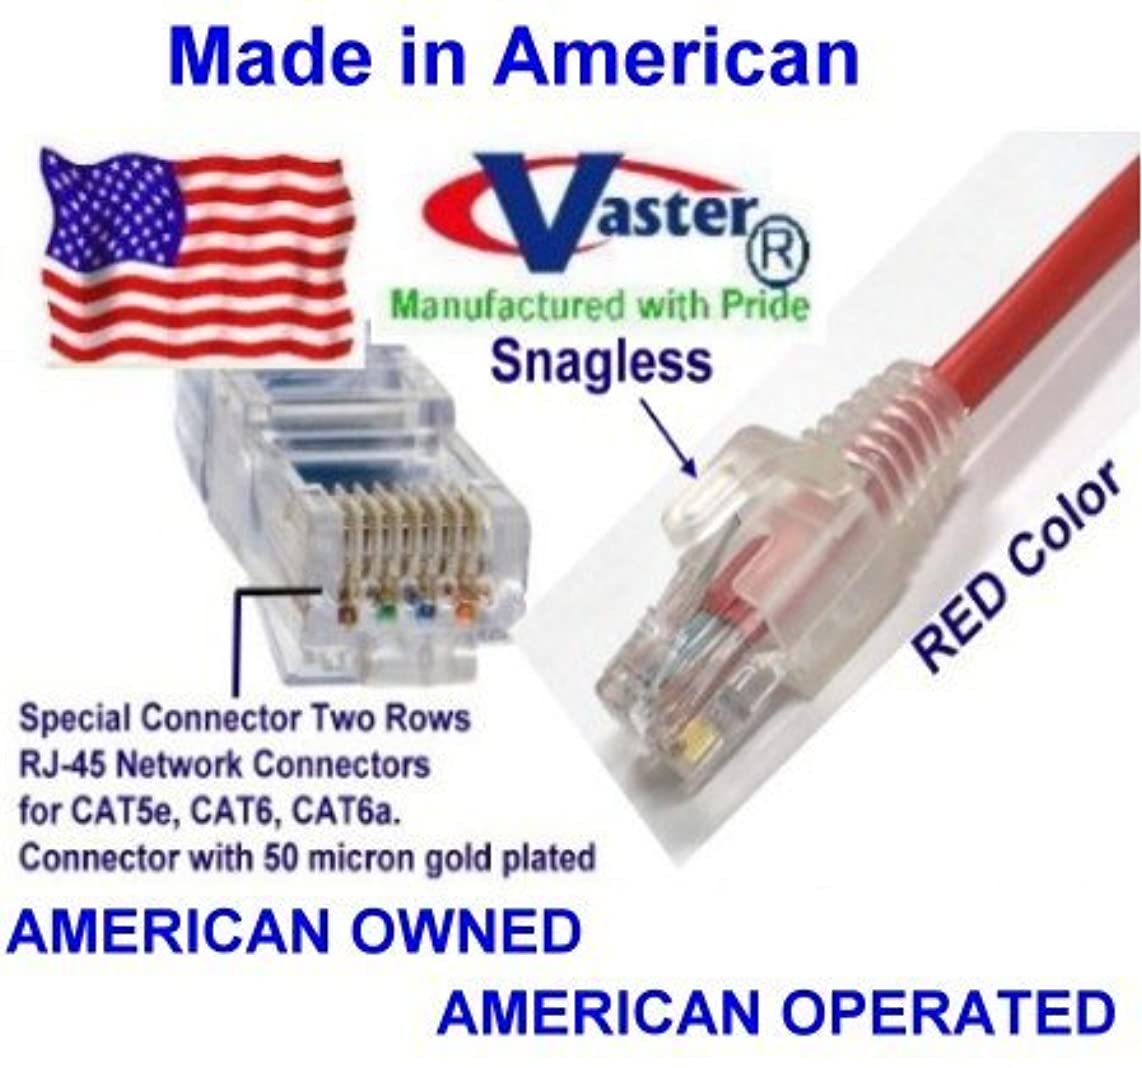 SuperEcable - USA-0677 - 40 Ft UTP Cat5e - Made in USA - RED – UL 24Awg Pure Copper – Ethernet Network Patch Cable